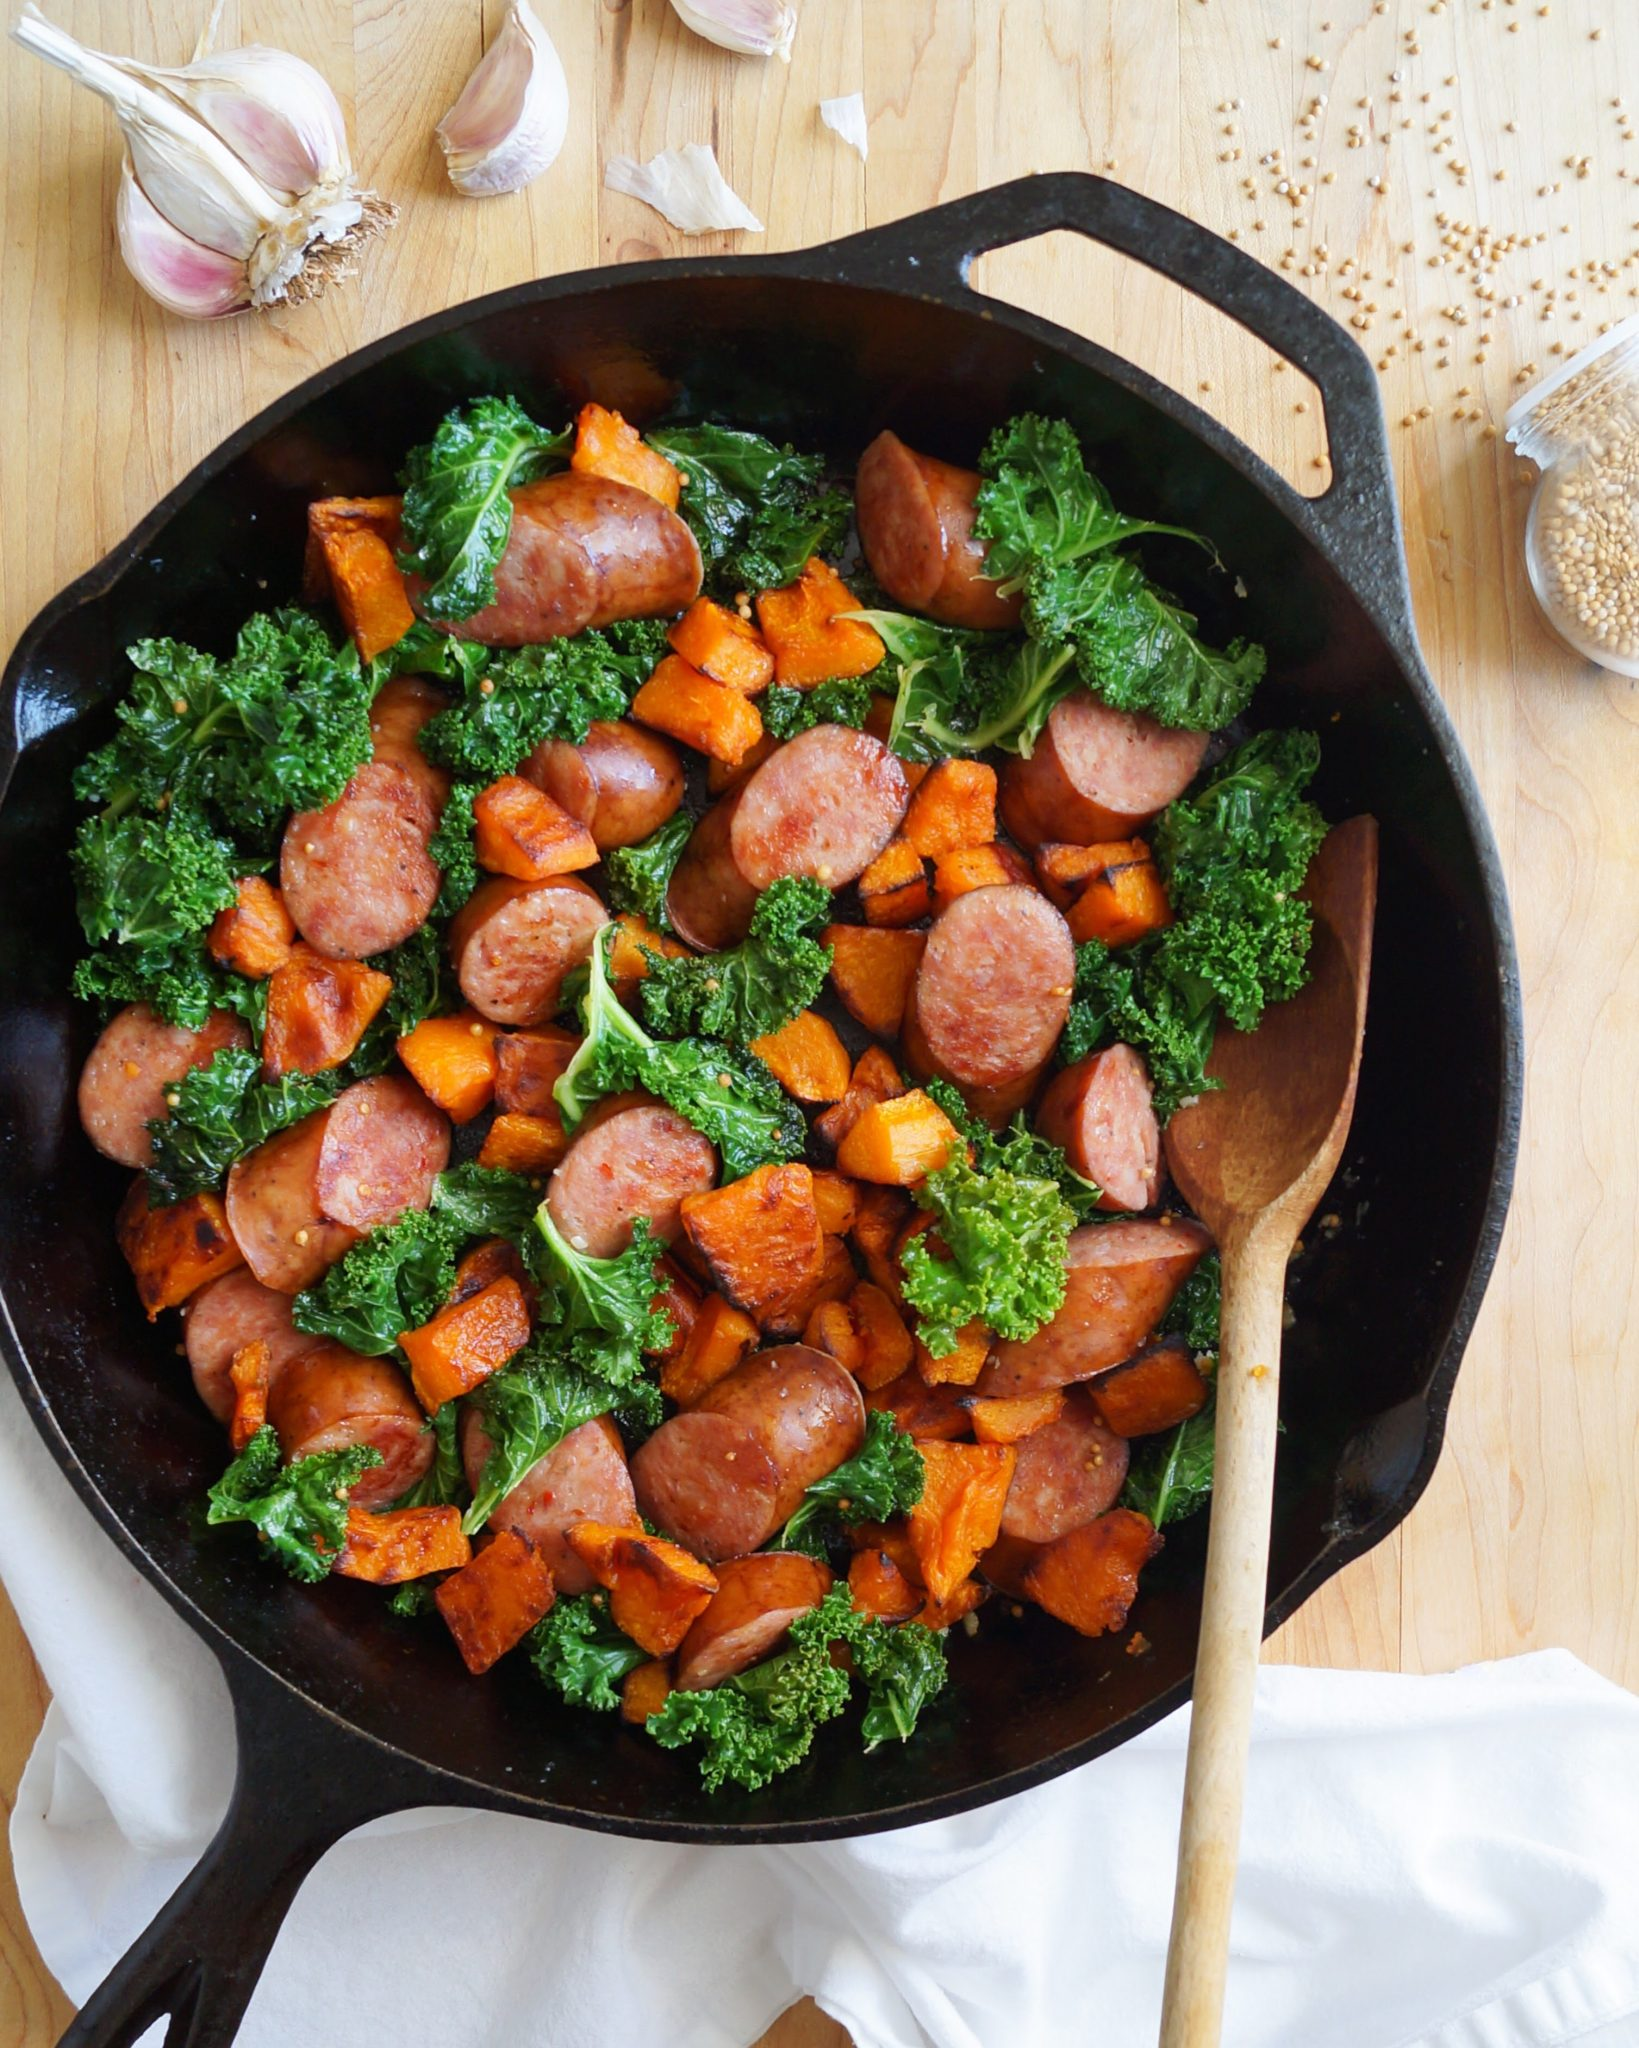 Whole30 & Paleo Sauteed Kielbasa Skillet with butternut squash and kale. It has all the best flavors of fall!